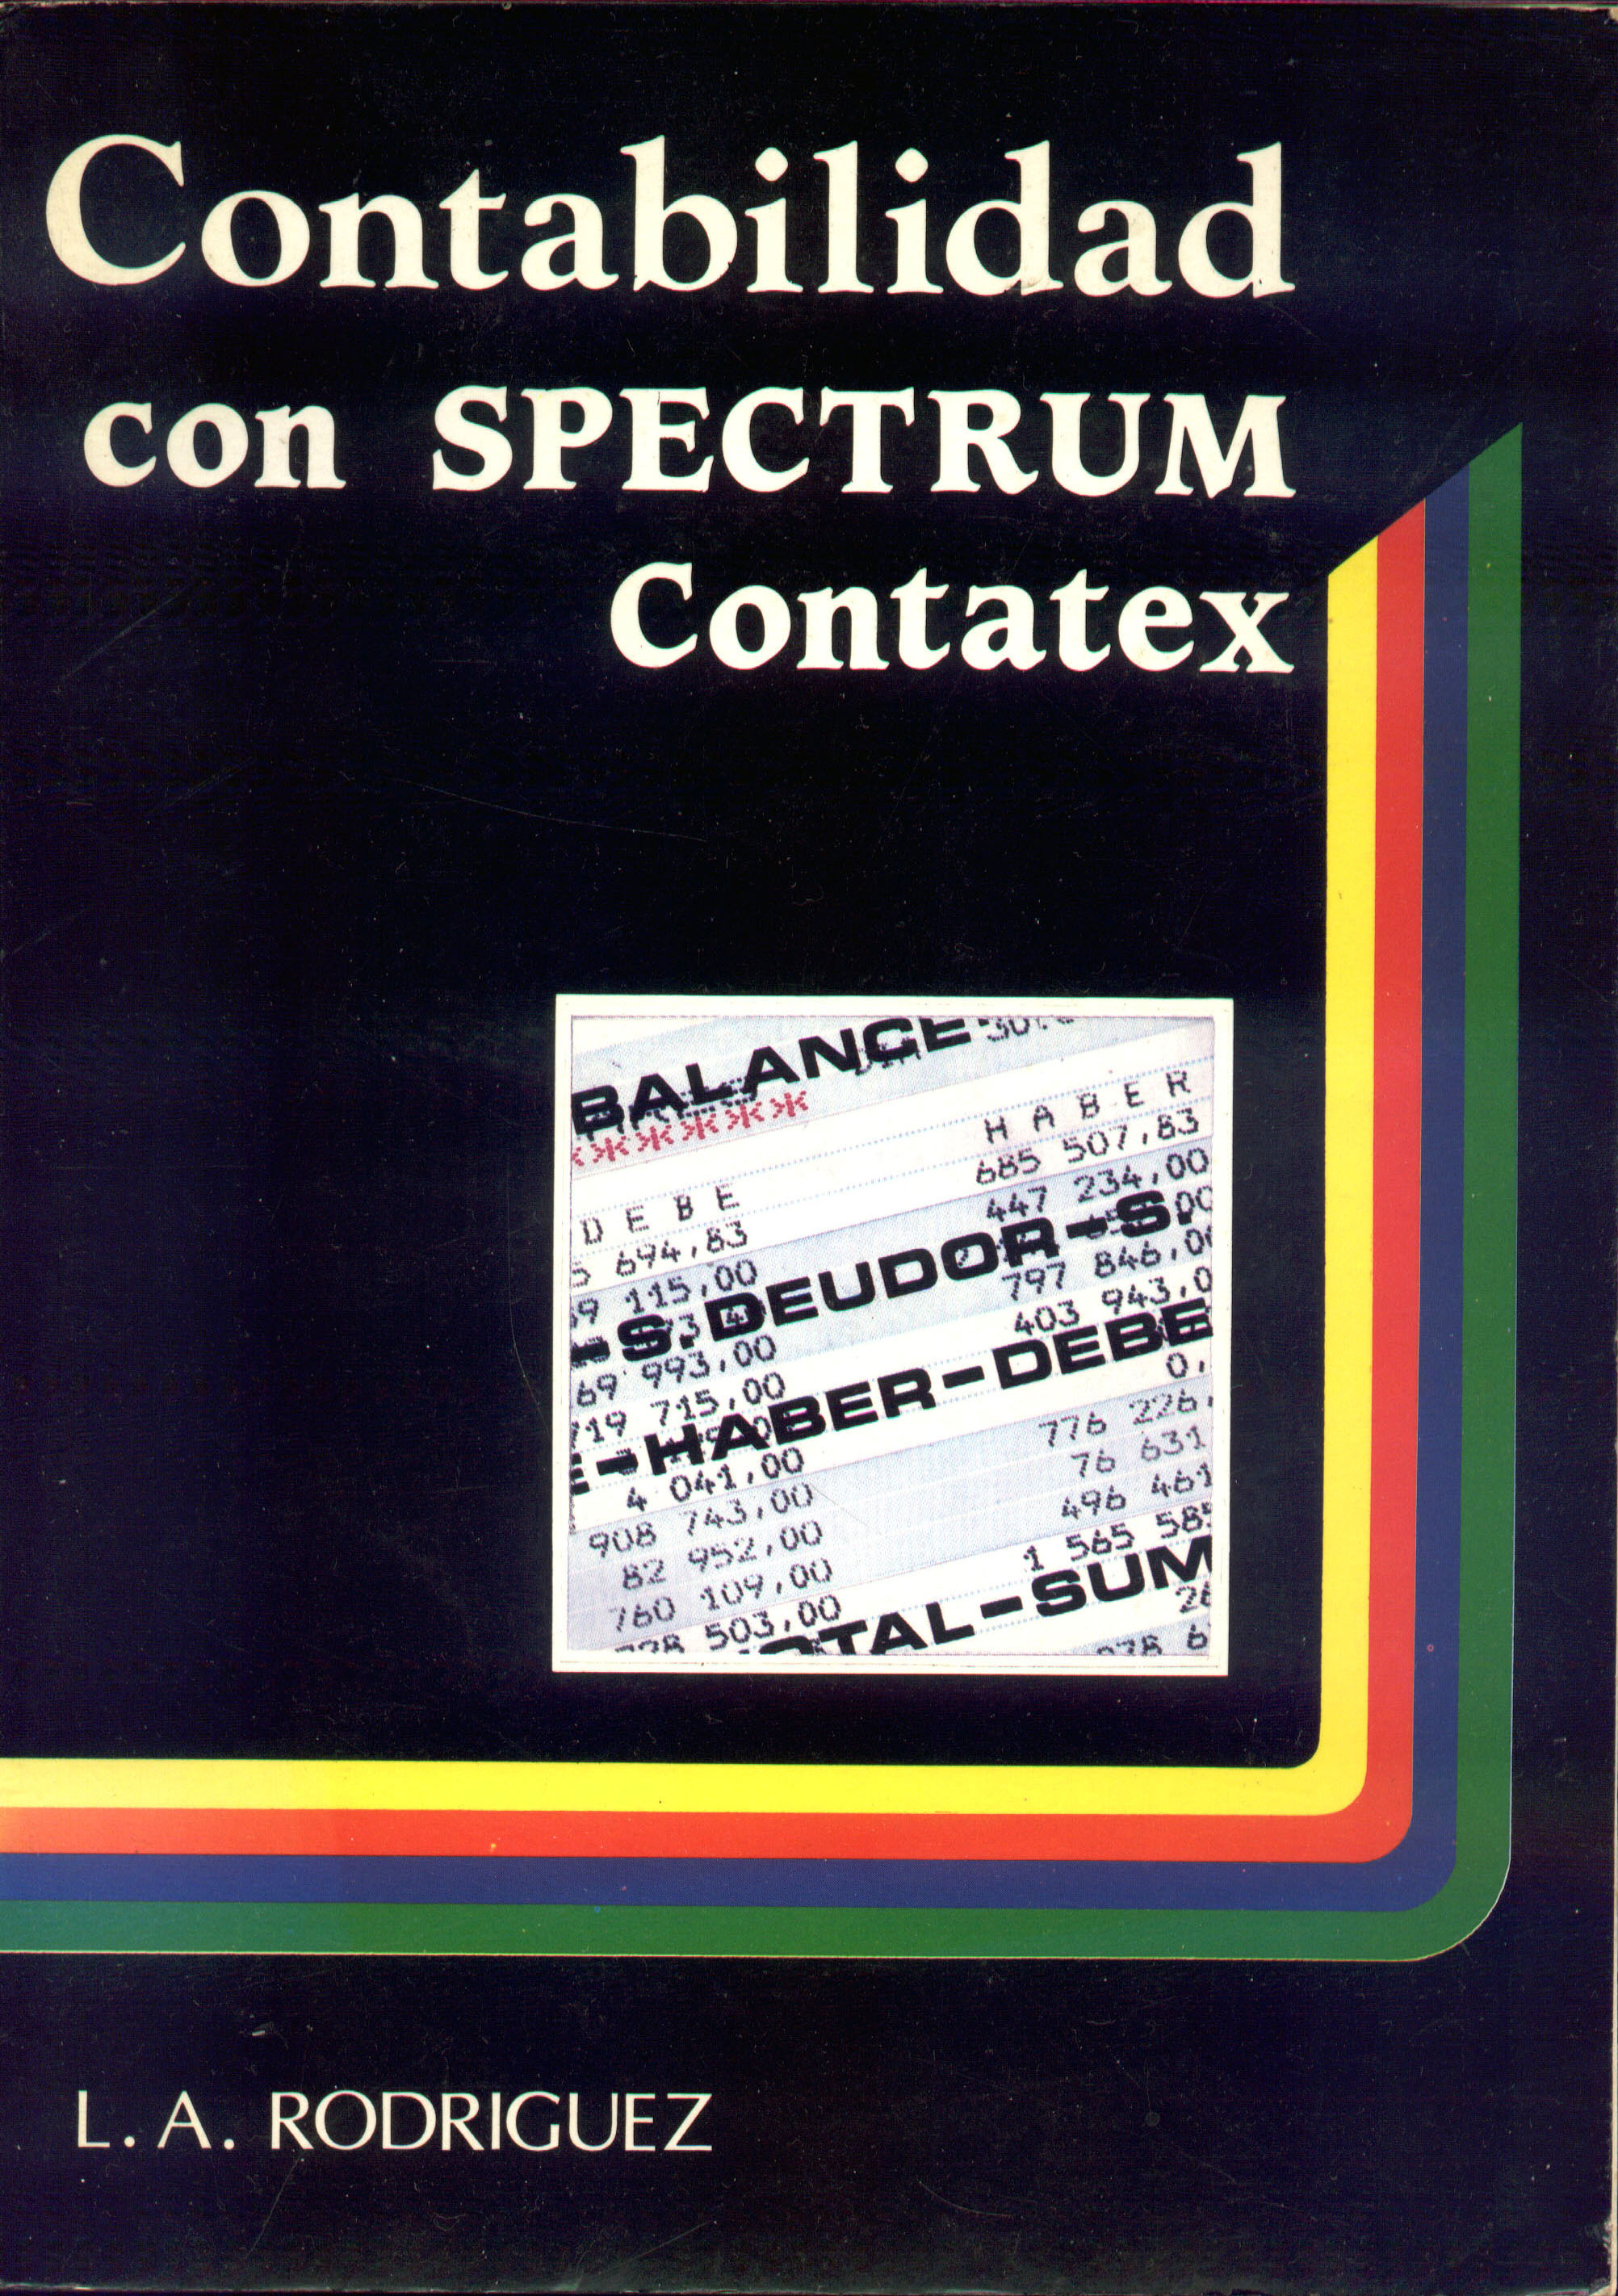 Contabilidad con Spectrum: Contatex screen